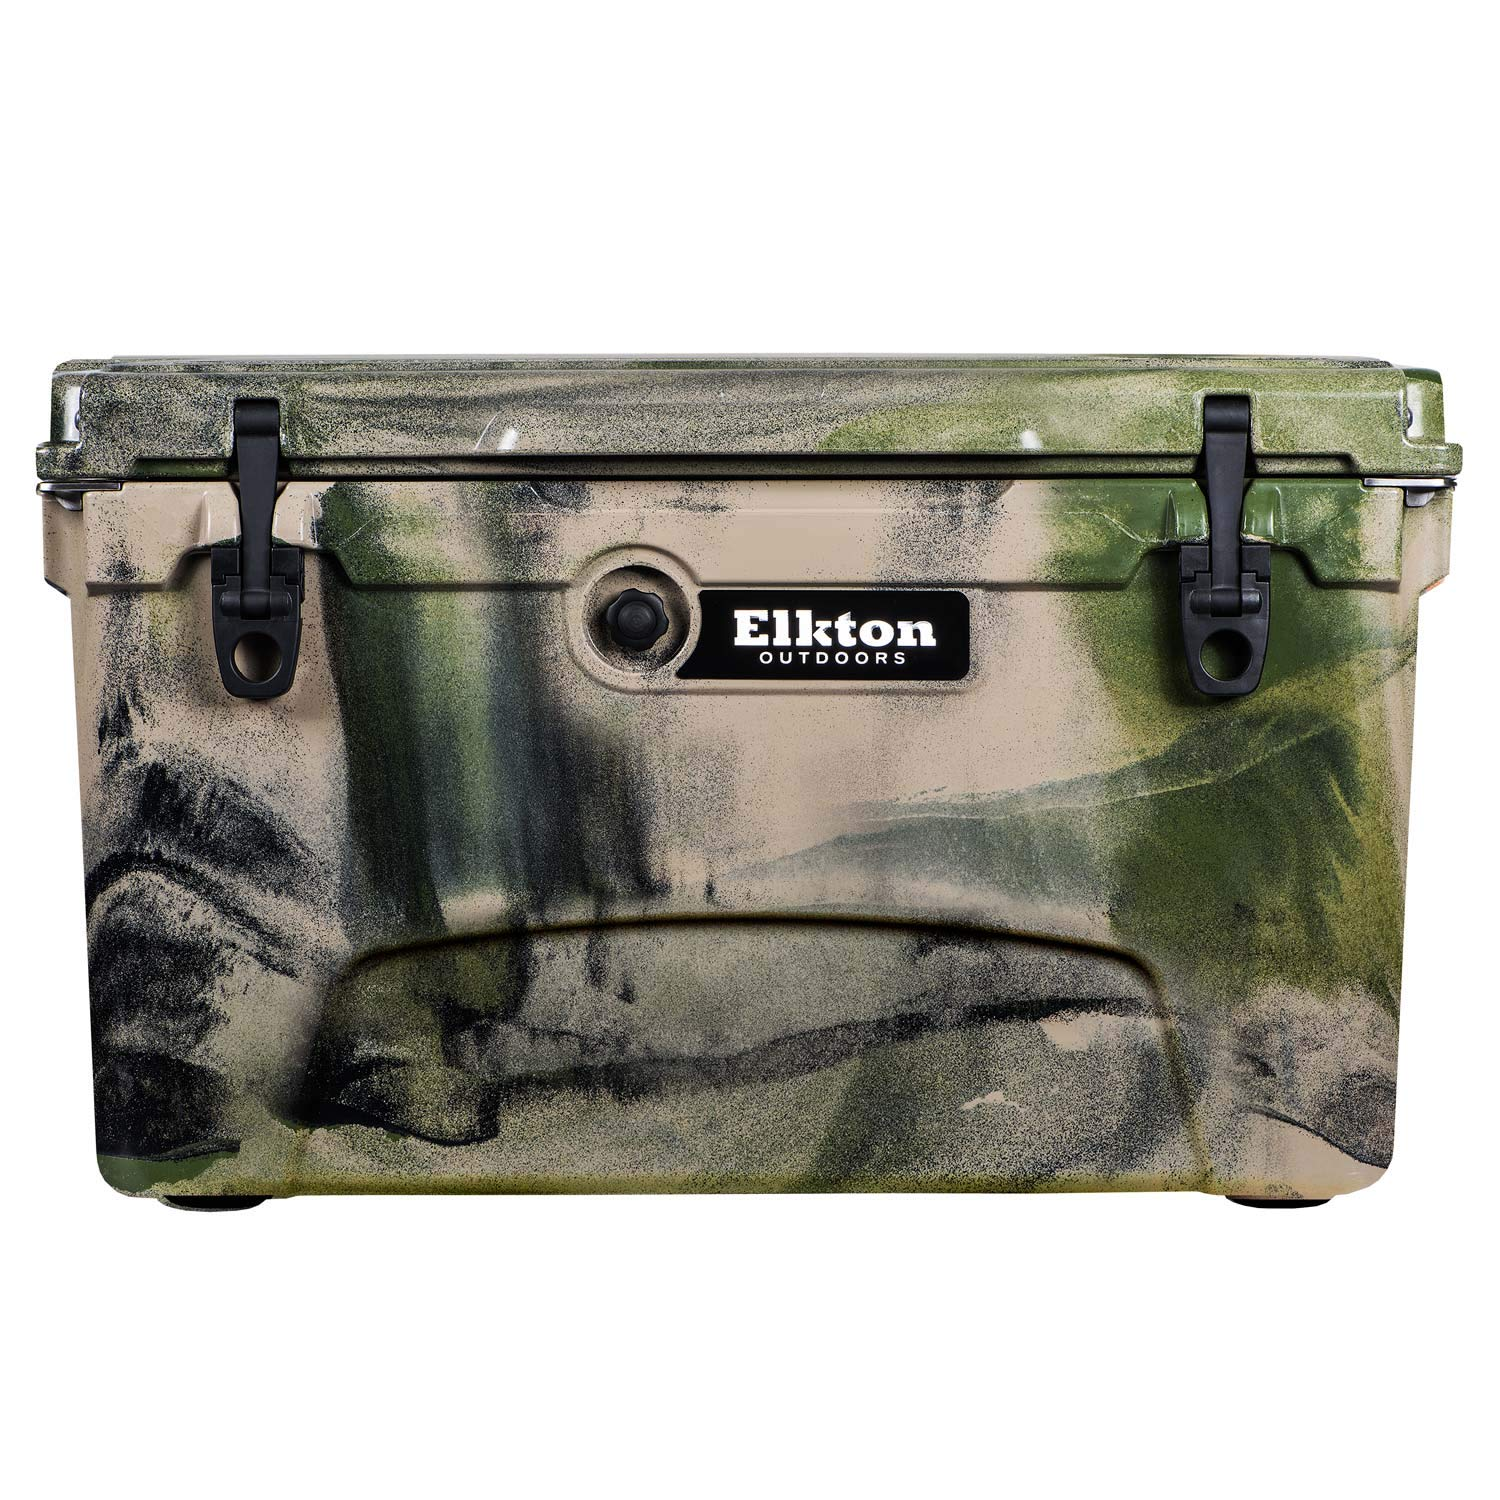 Heavy Duty High Performance Roto-Molded Commercial Grade Insulated Cooler 45-Quart Green Elkton Outdoors Ice Chest